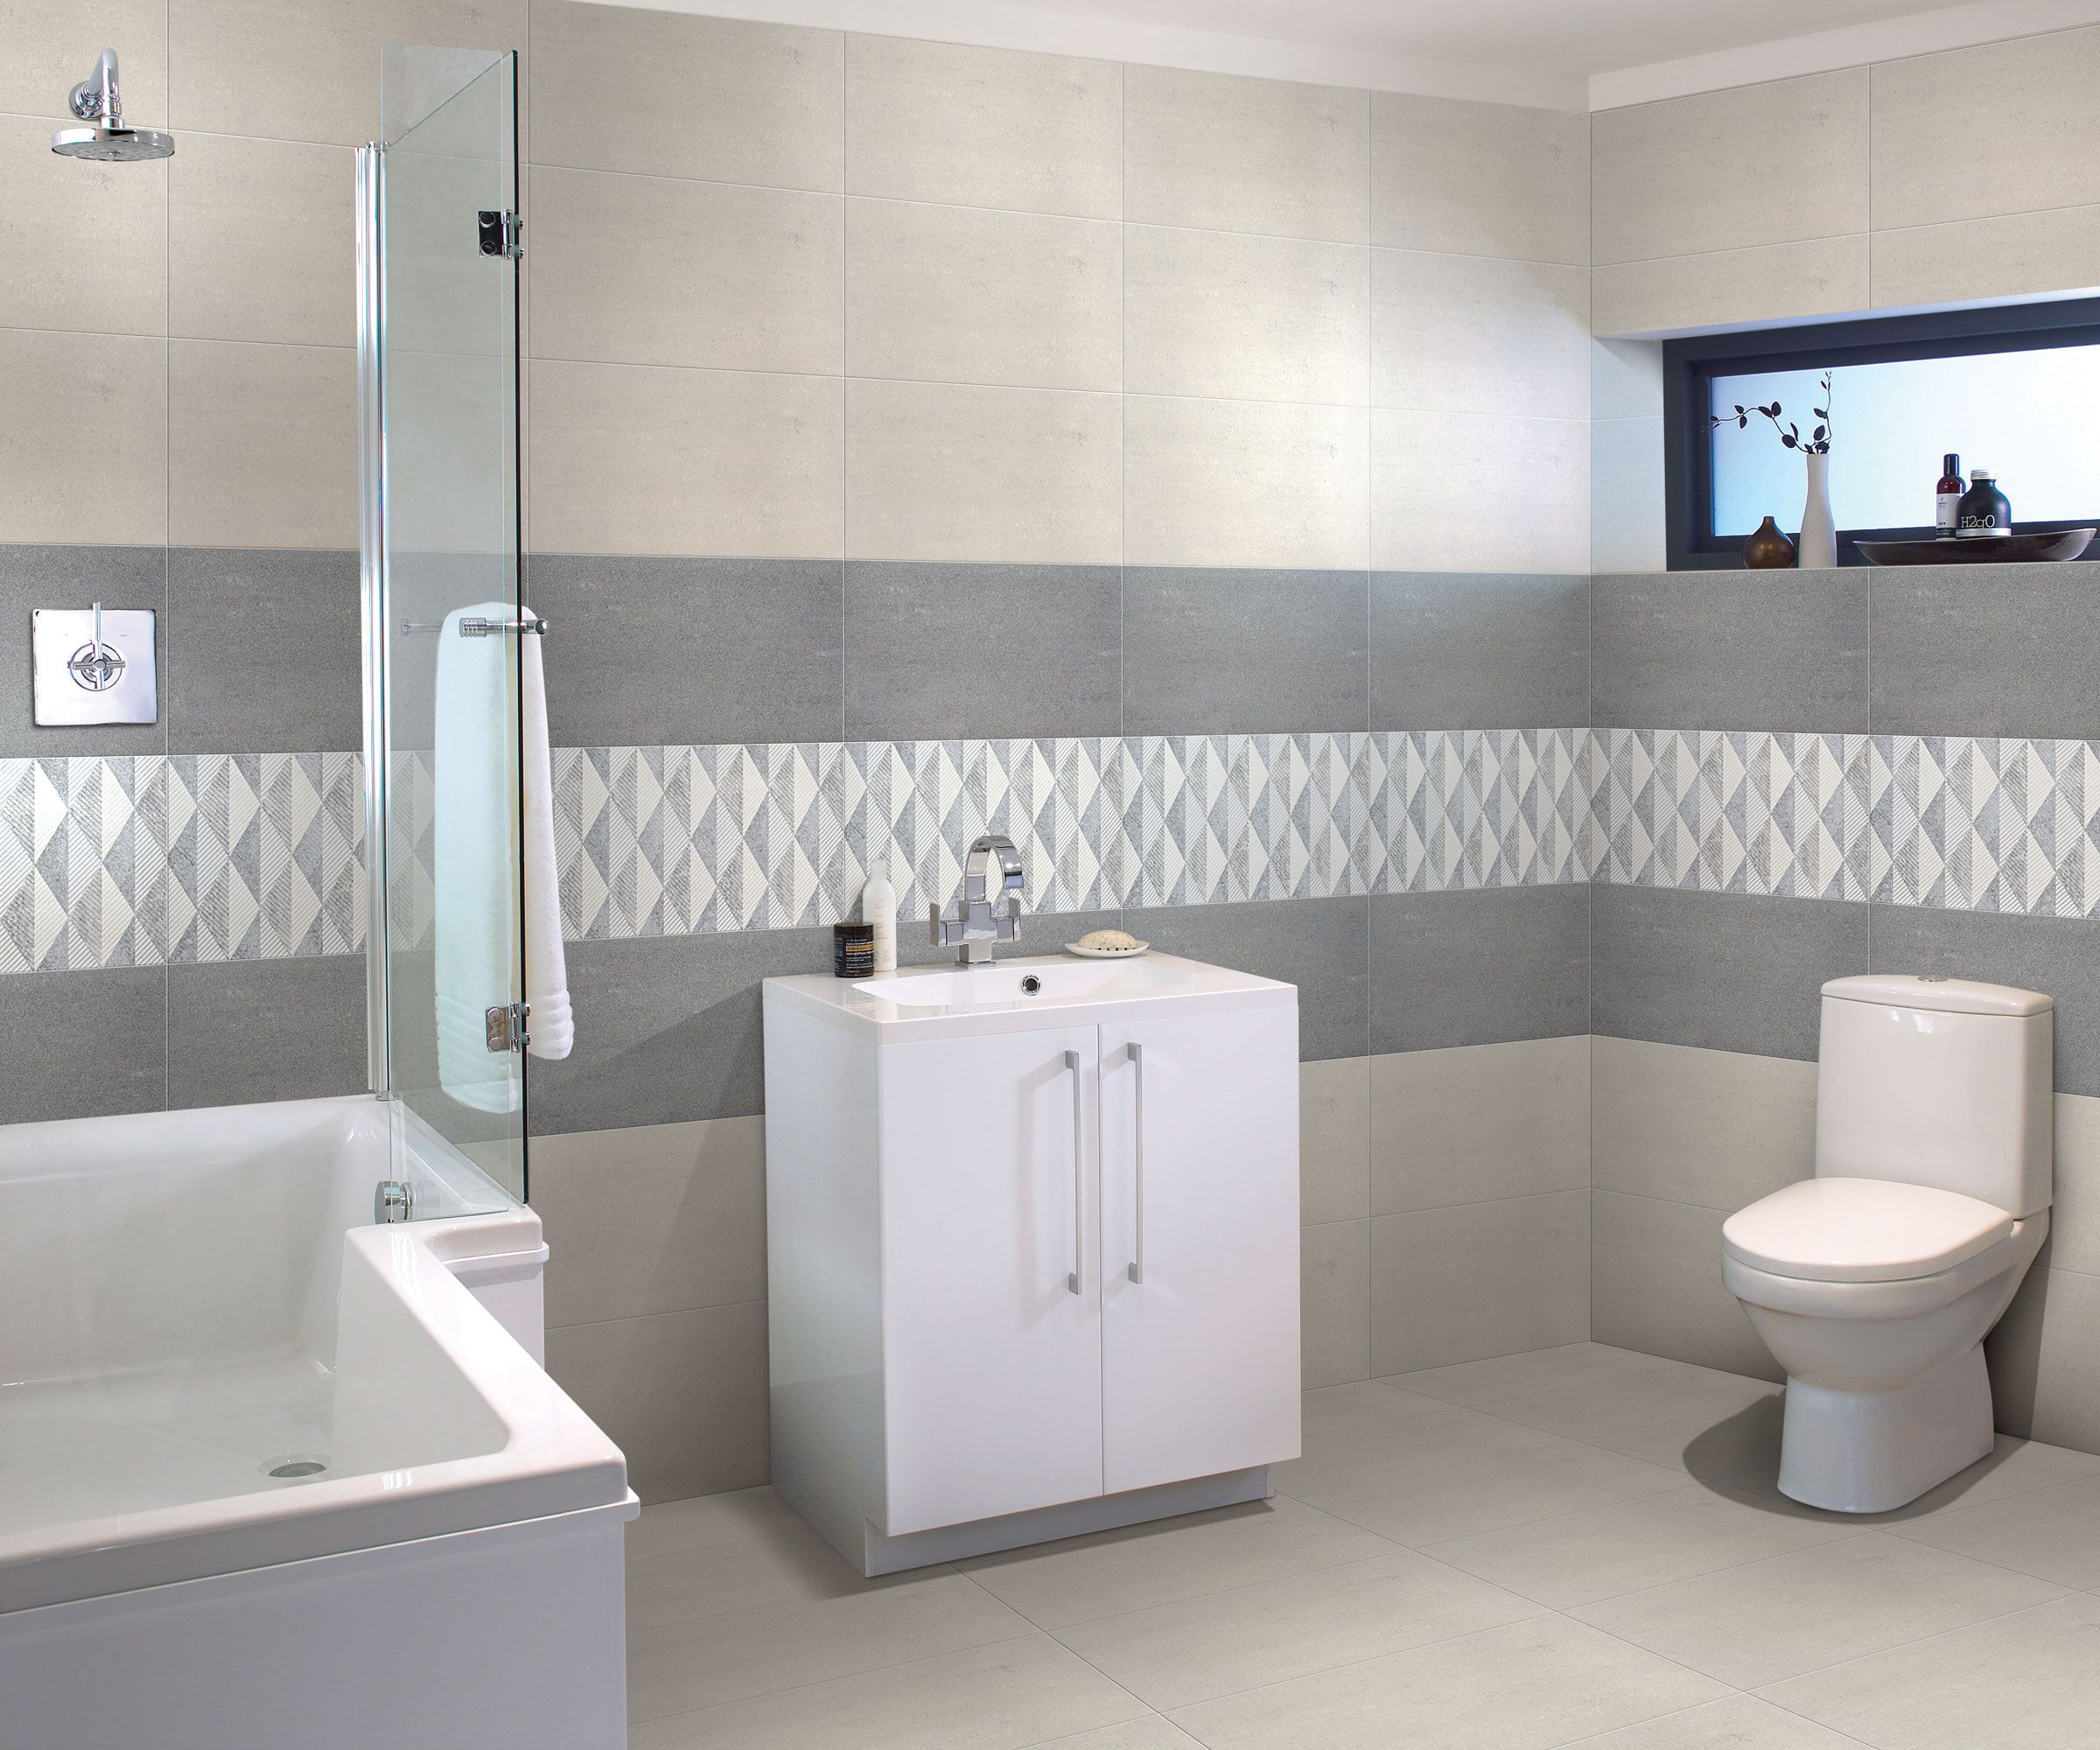 Tremendous Bathroom Wall Tiles Design Tile Designs India Home